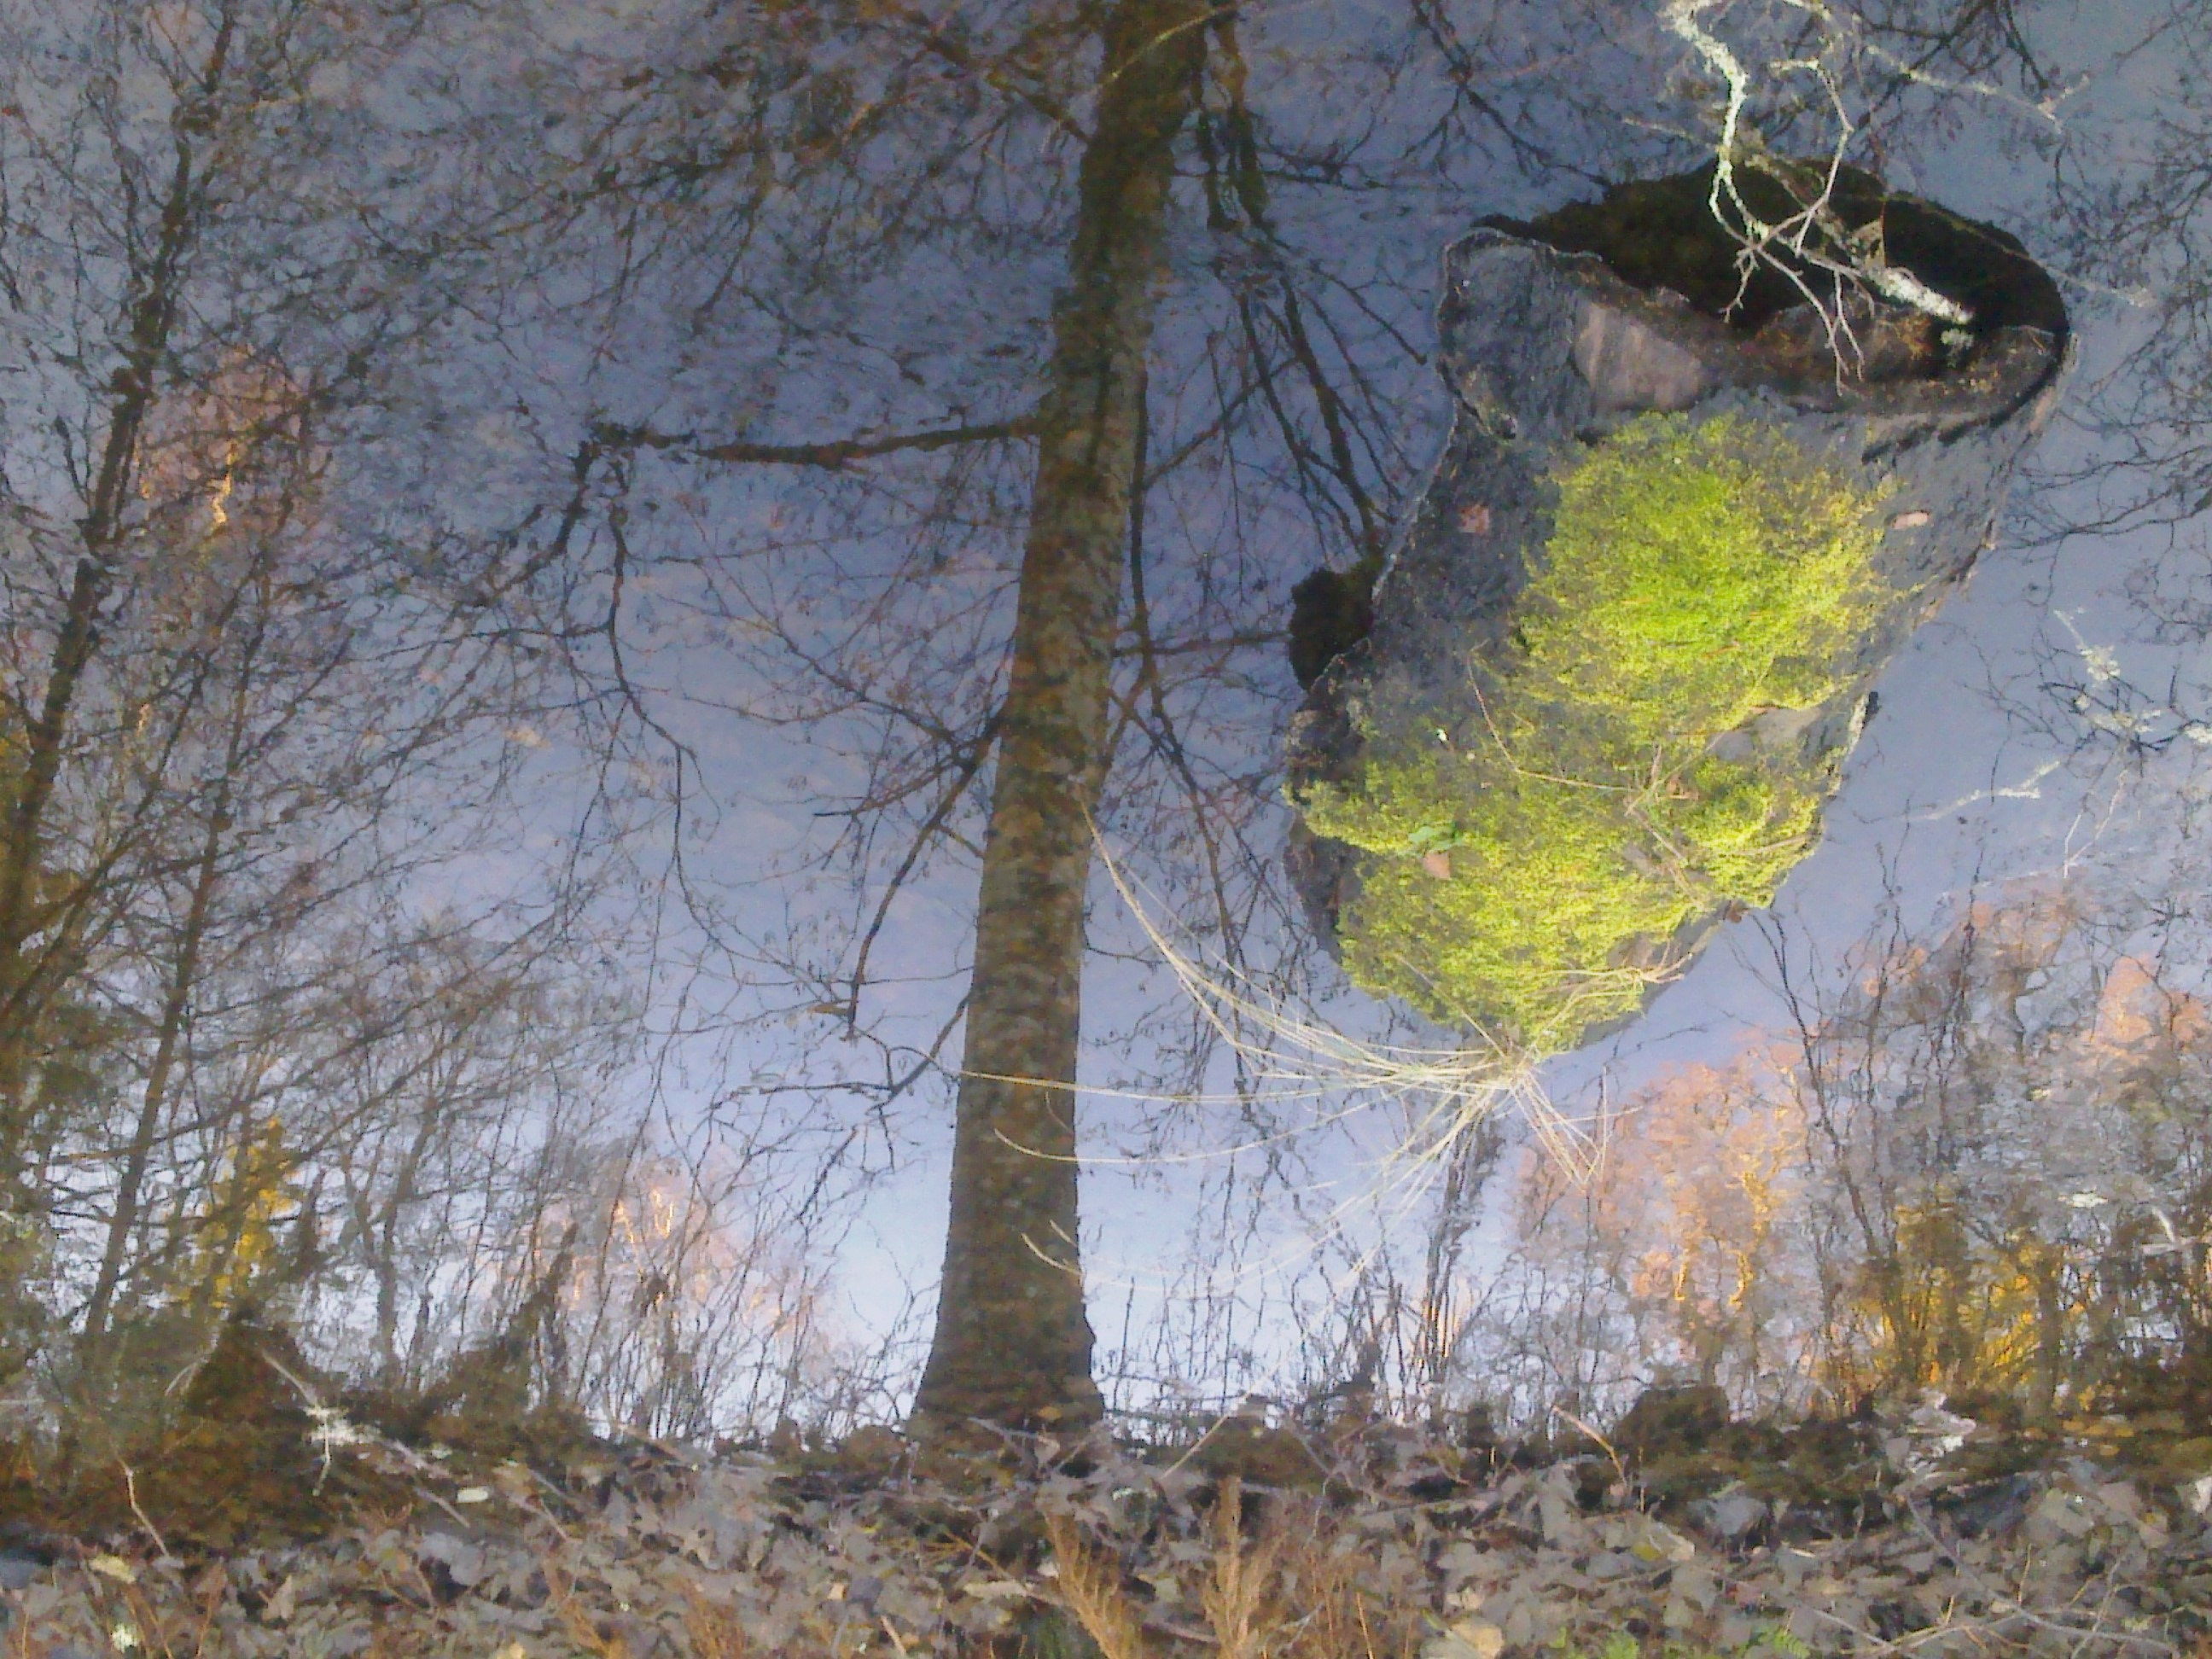 water-and-ice-mirroring-1